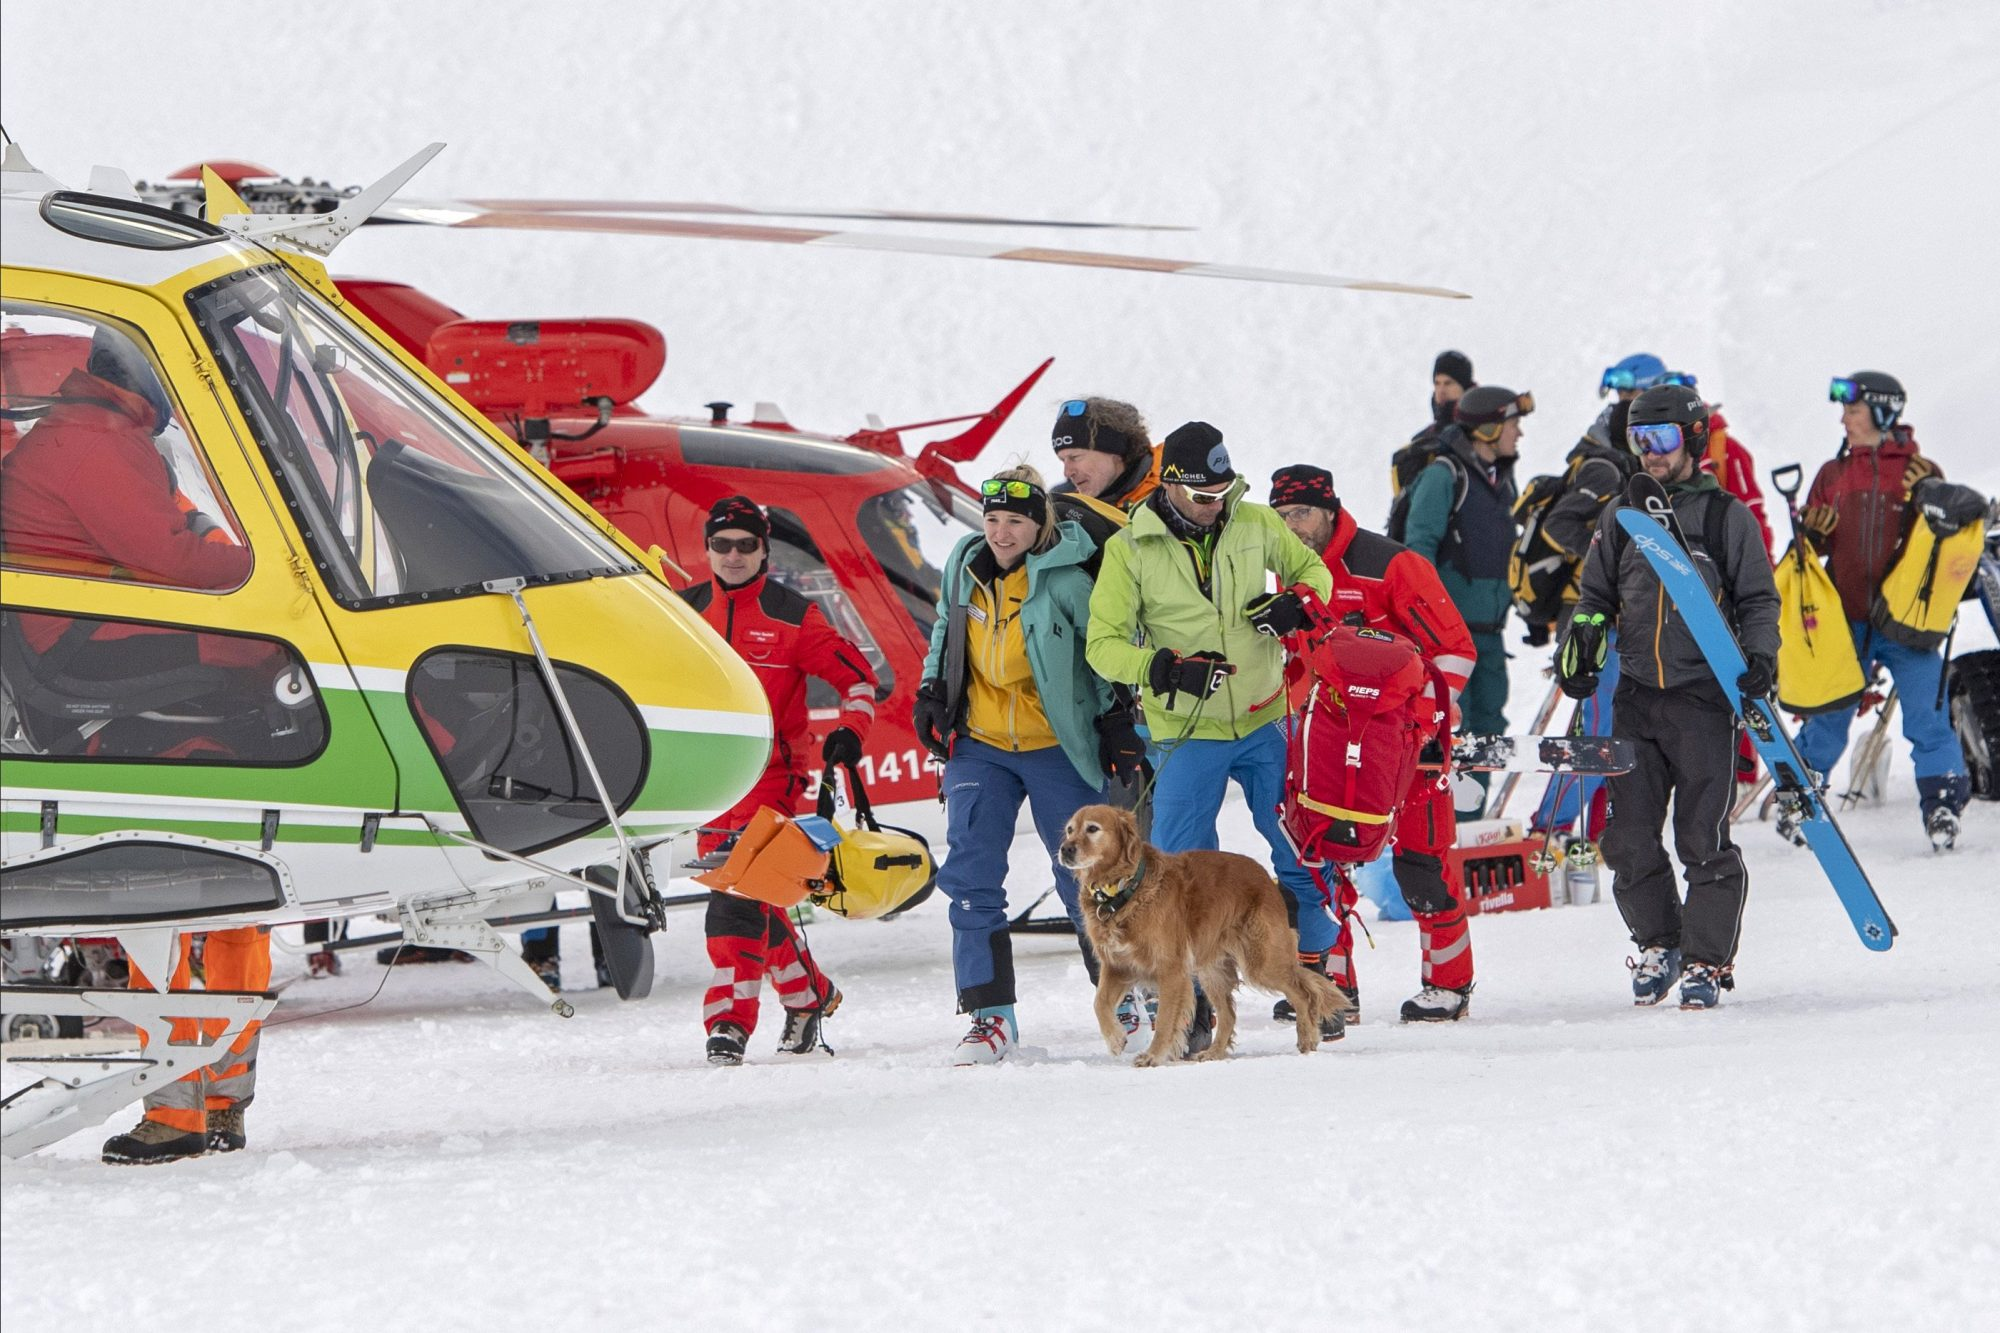 People missing in snow avalanche in Andermatt